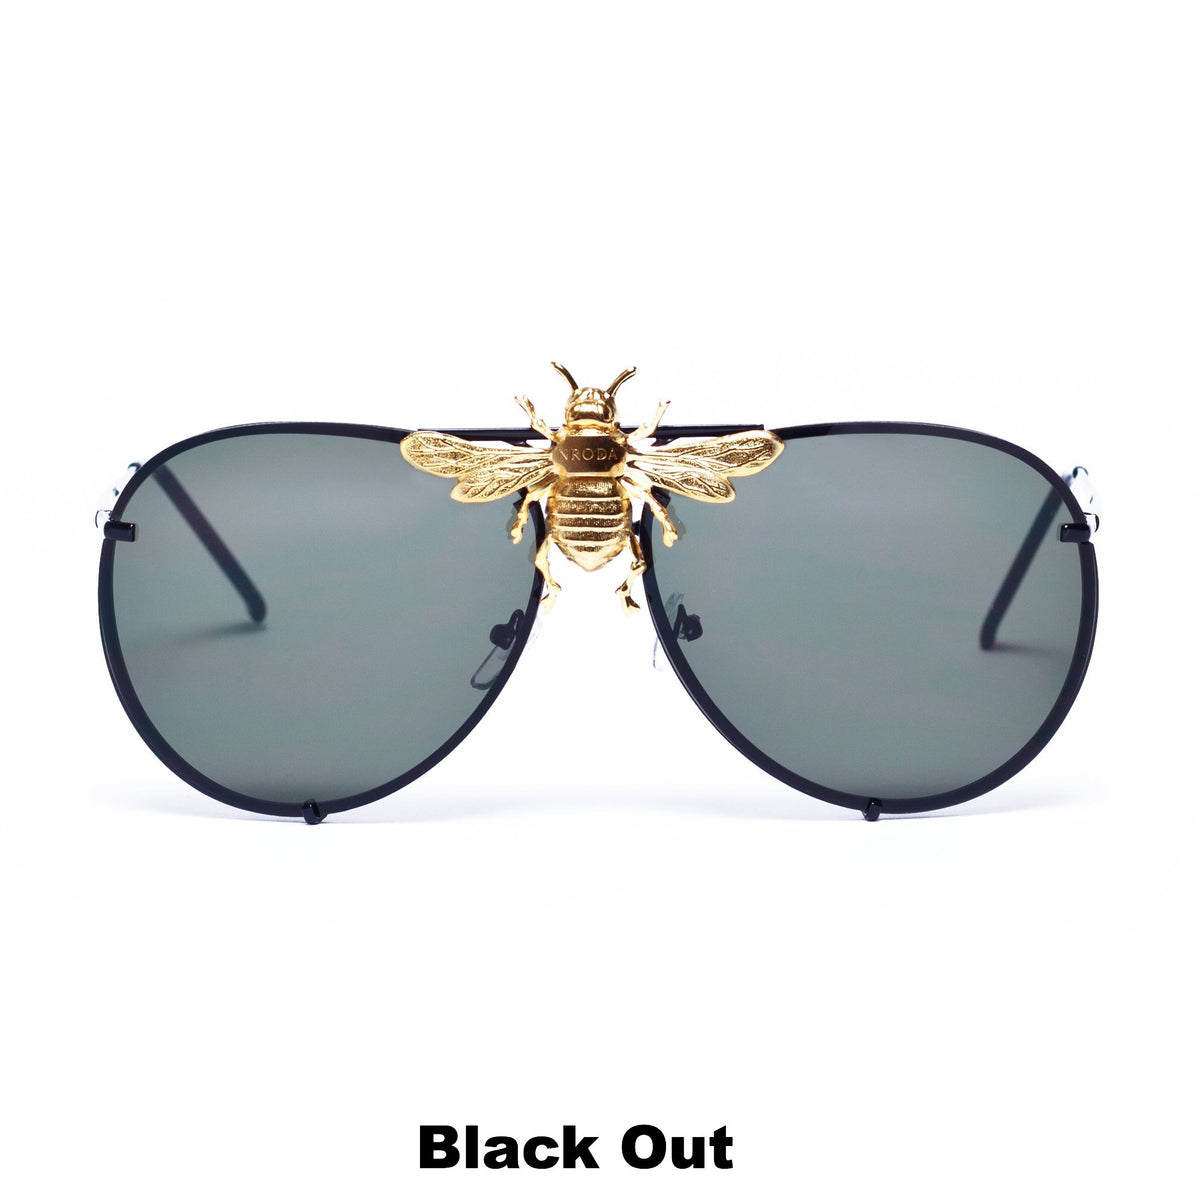 I'll Be Rich Forever Bee Sunglasses [Limited Black Out Edition] Black Out: Jet Lens/Jet frame SUNNIES + OPTICS Sunglasses Collection, Tnemnroda man- NRODA